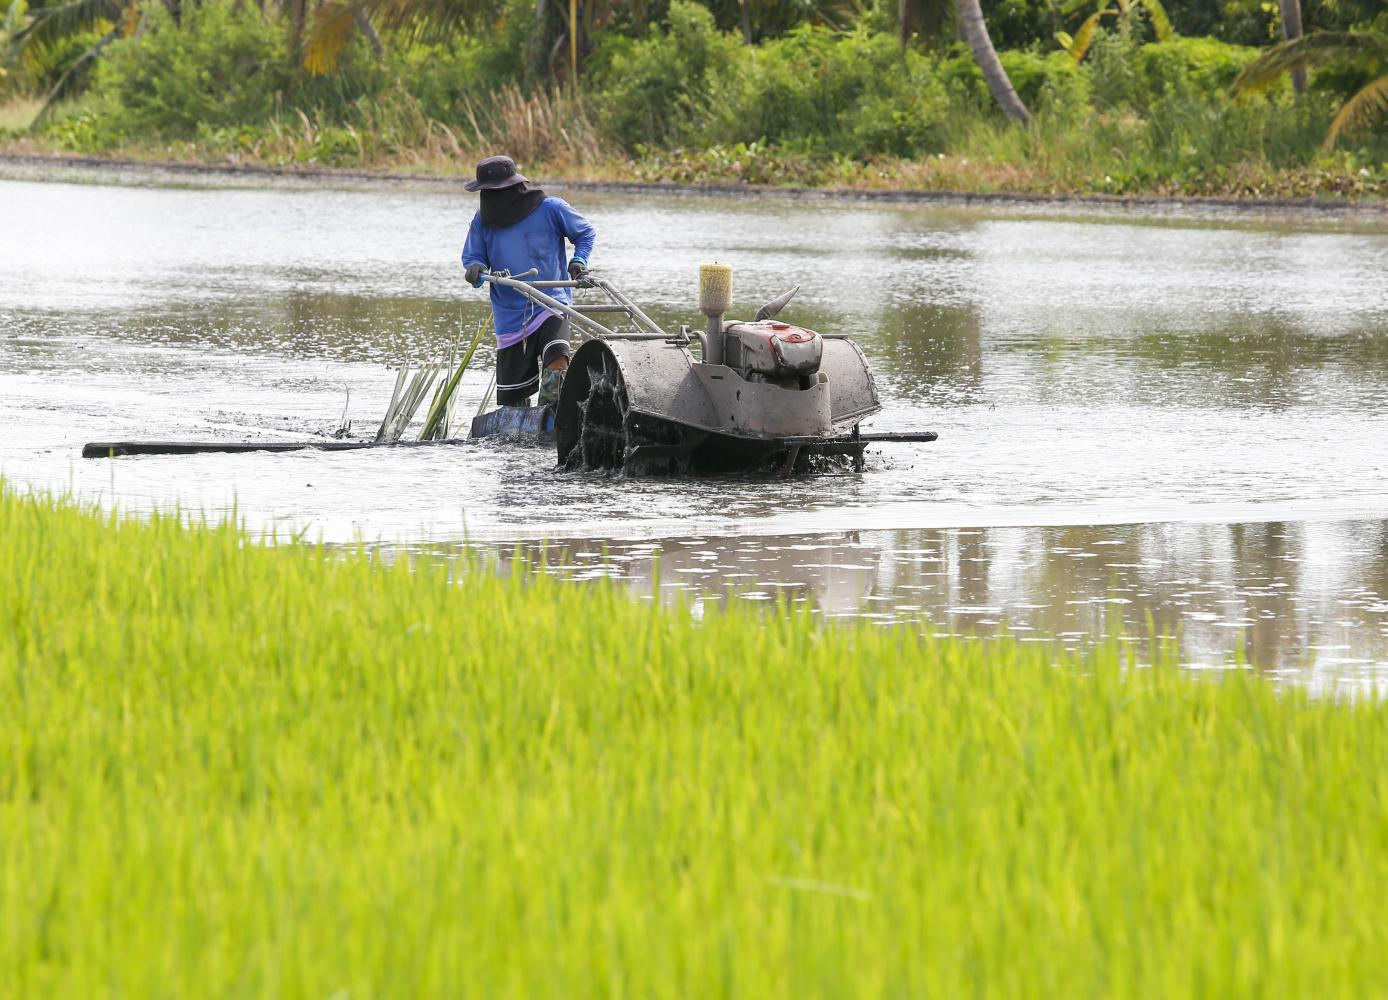 A farmer works in a rice field in Lat Lum Kaeo, Pathum Thani province. The BAAC is preparing a scheme to bring tech to farmers. (Photo by Pattarapong Chatpattarasill)